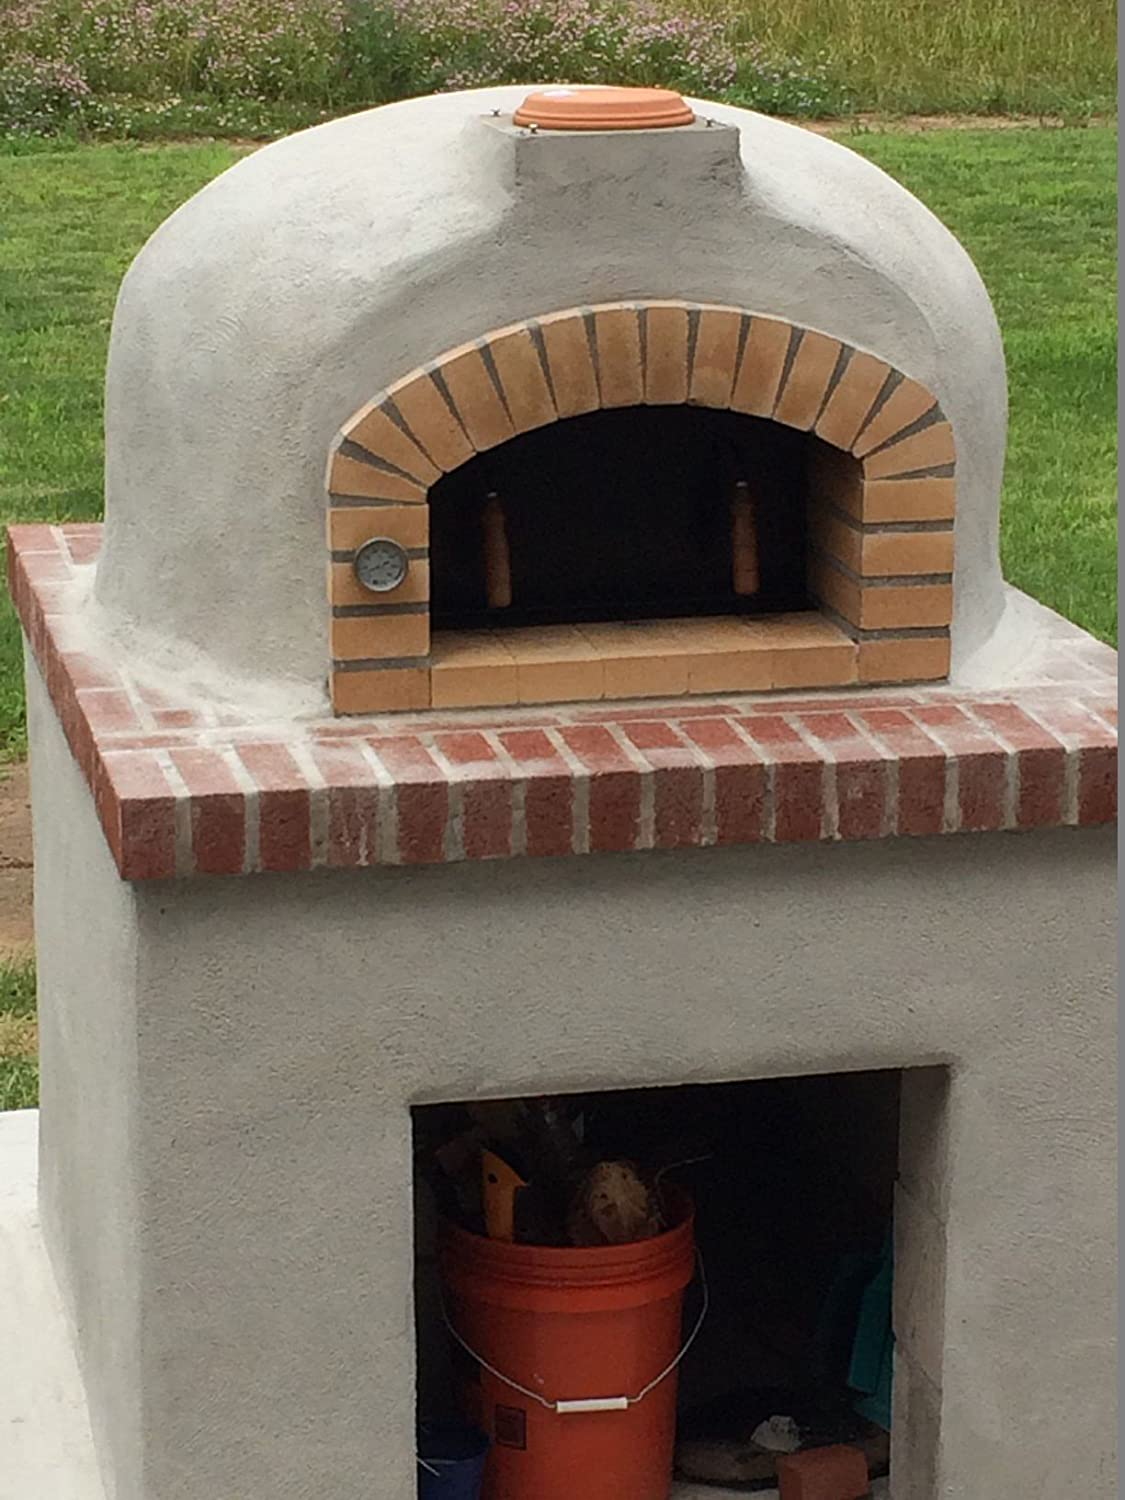 Amazon Com Outdoor Pizza Oven Wood Fired Insulated W Brick